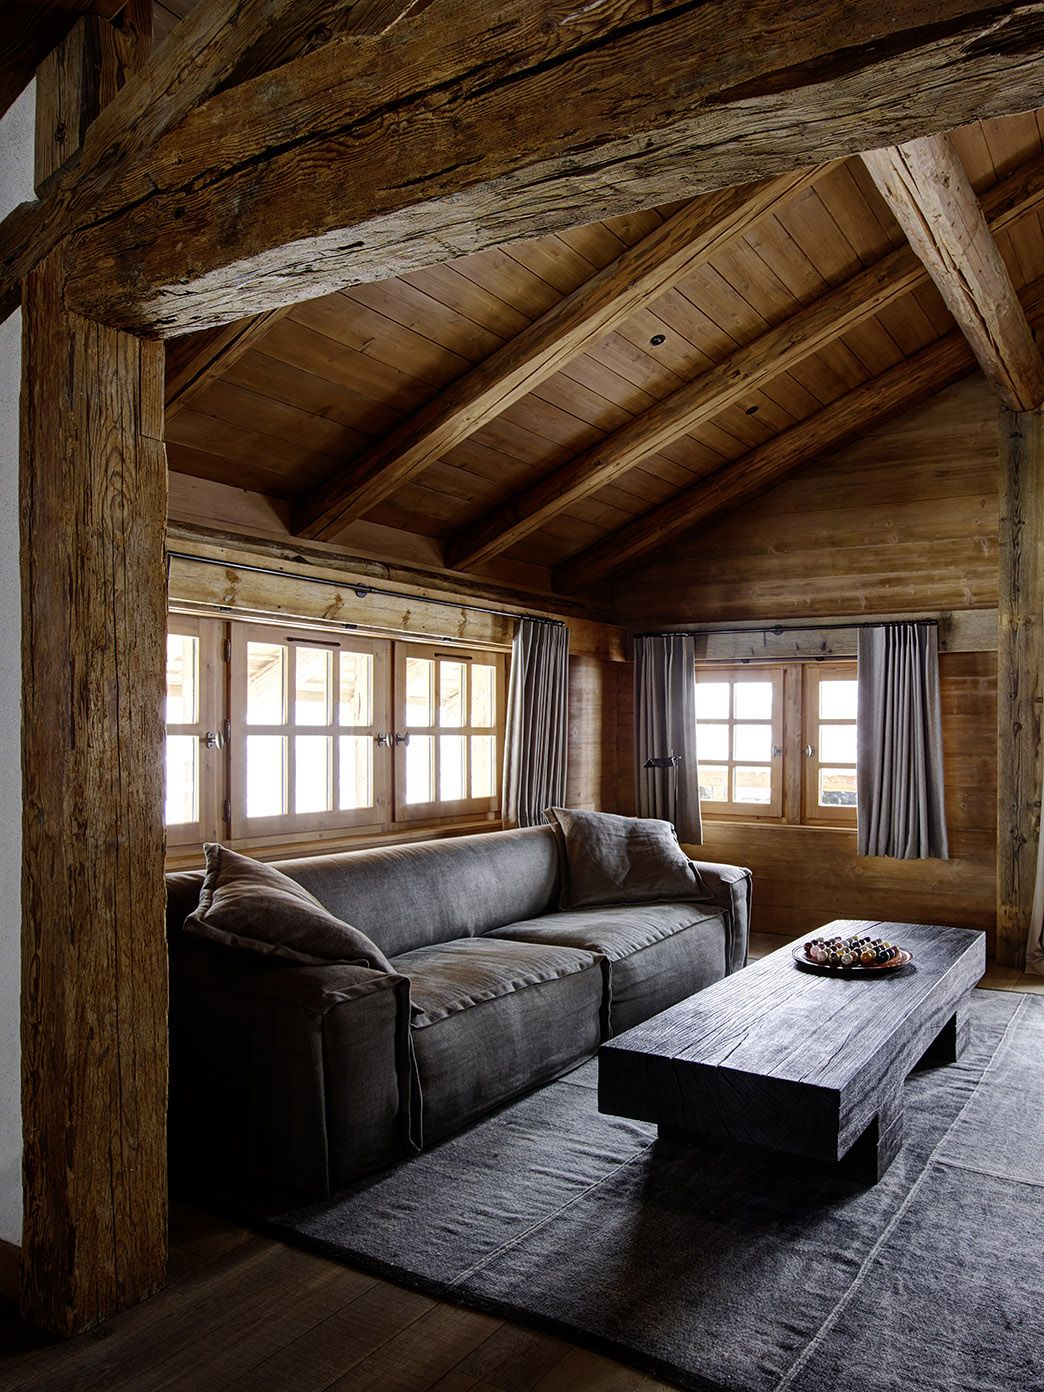 Piet Boon FEDDE sofa at Alpine residence | Living / Woonkamer ...